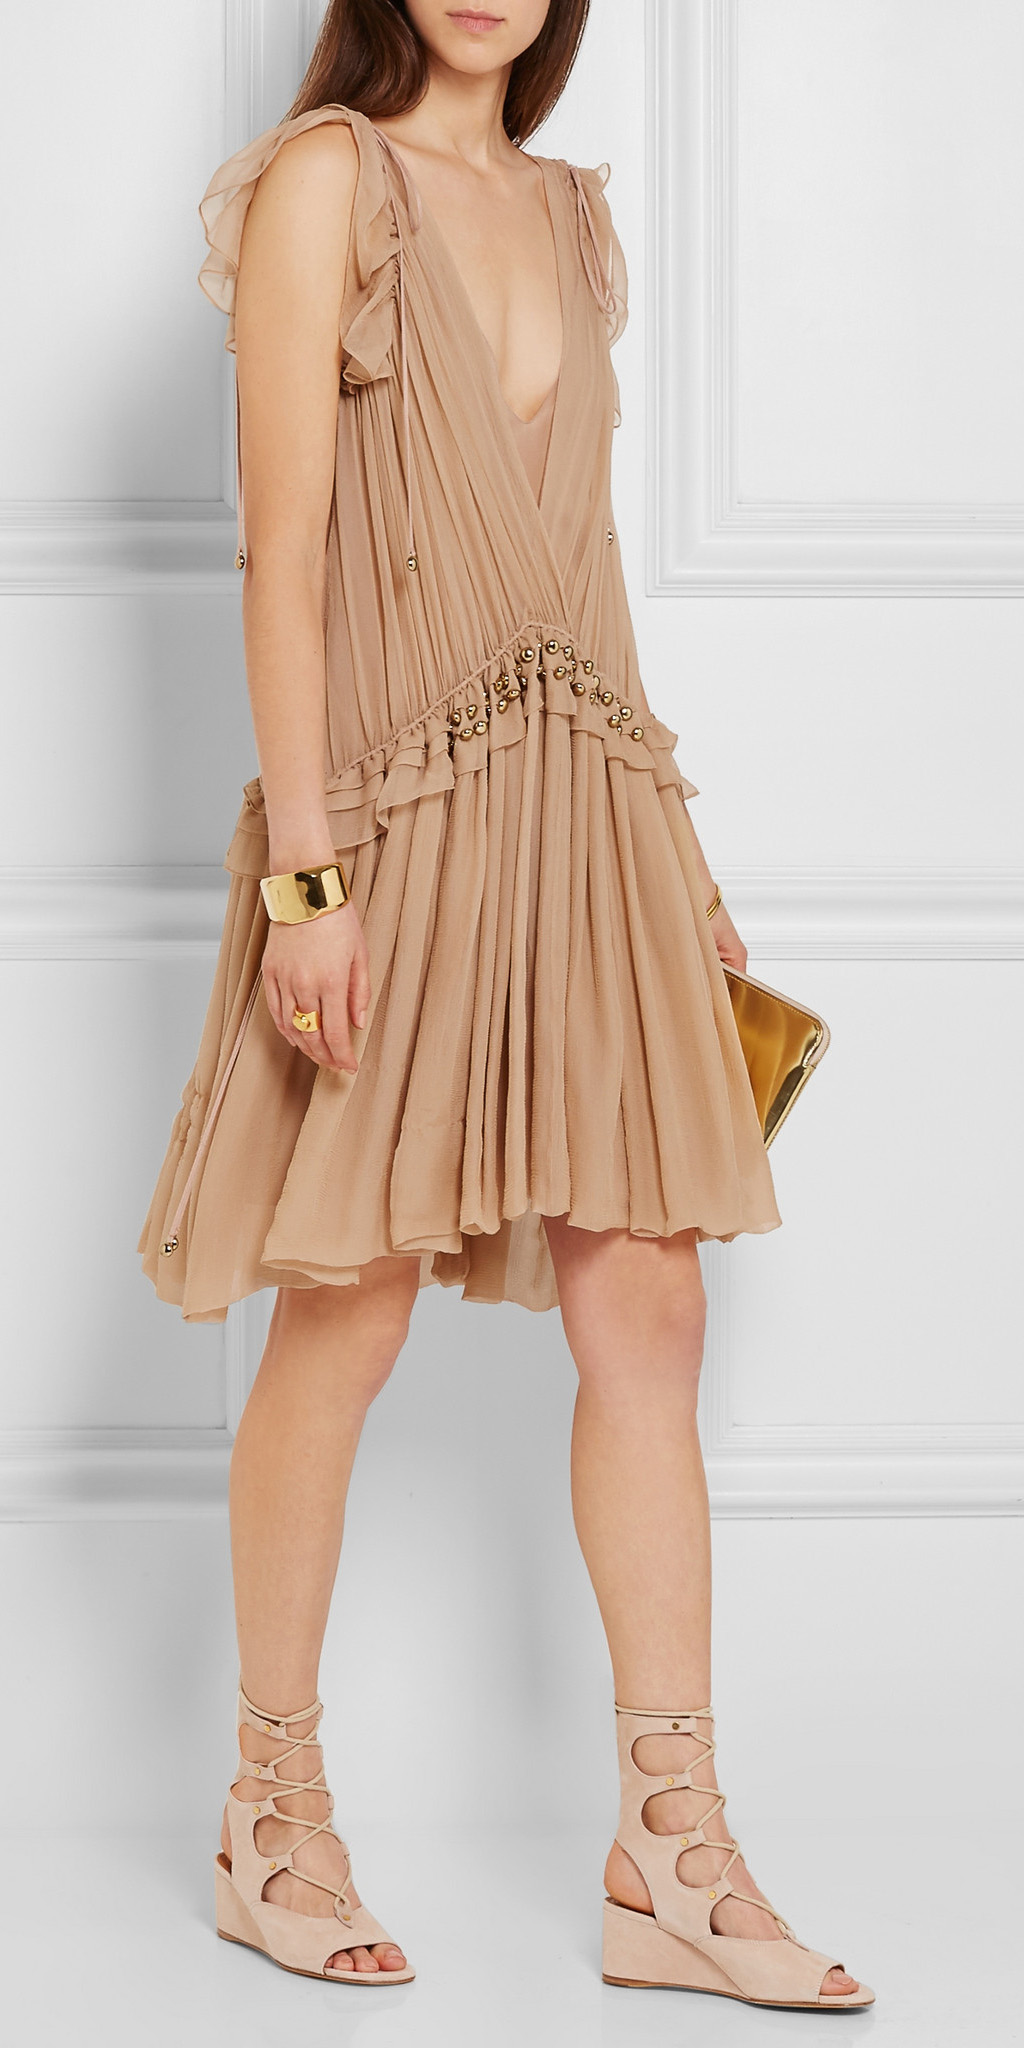 tan-dress-swing-tank-tan-shoe-sandalw-bracelet-hairr-gold-spring-summer-lunch.jpeg